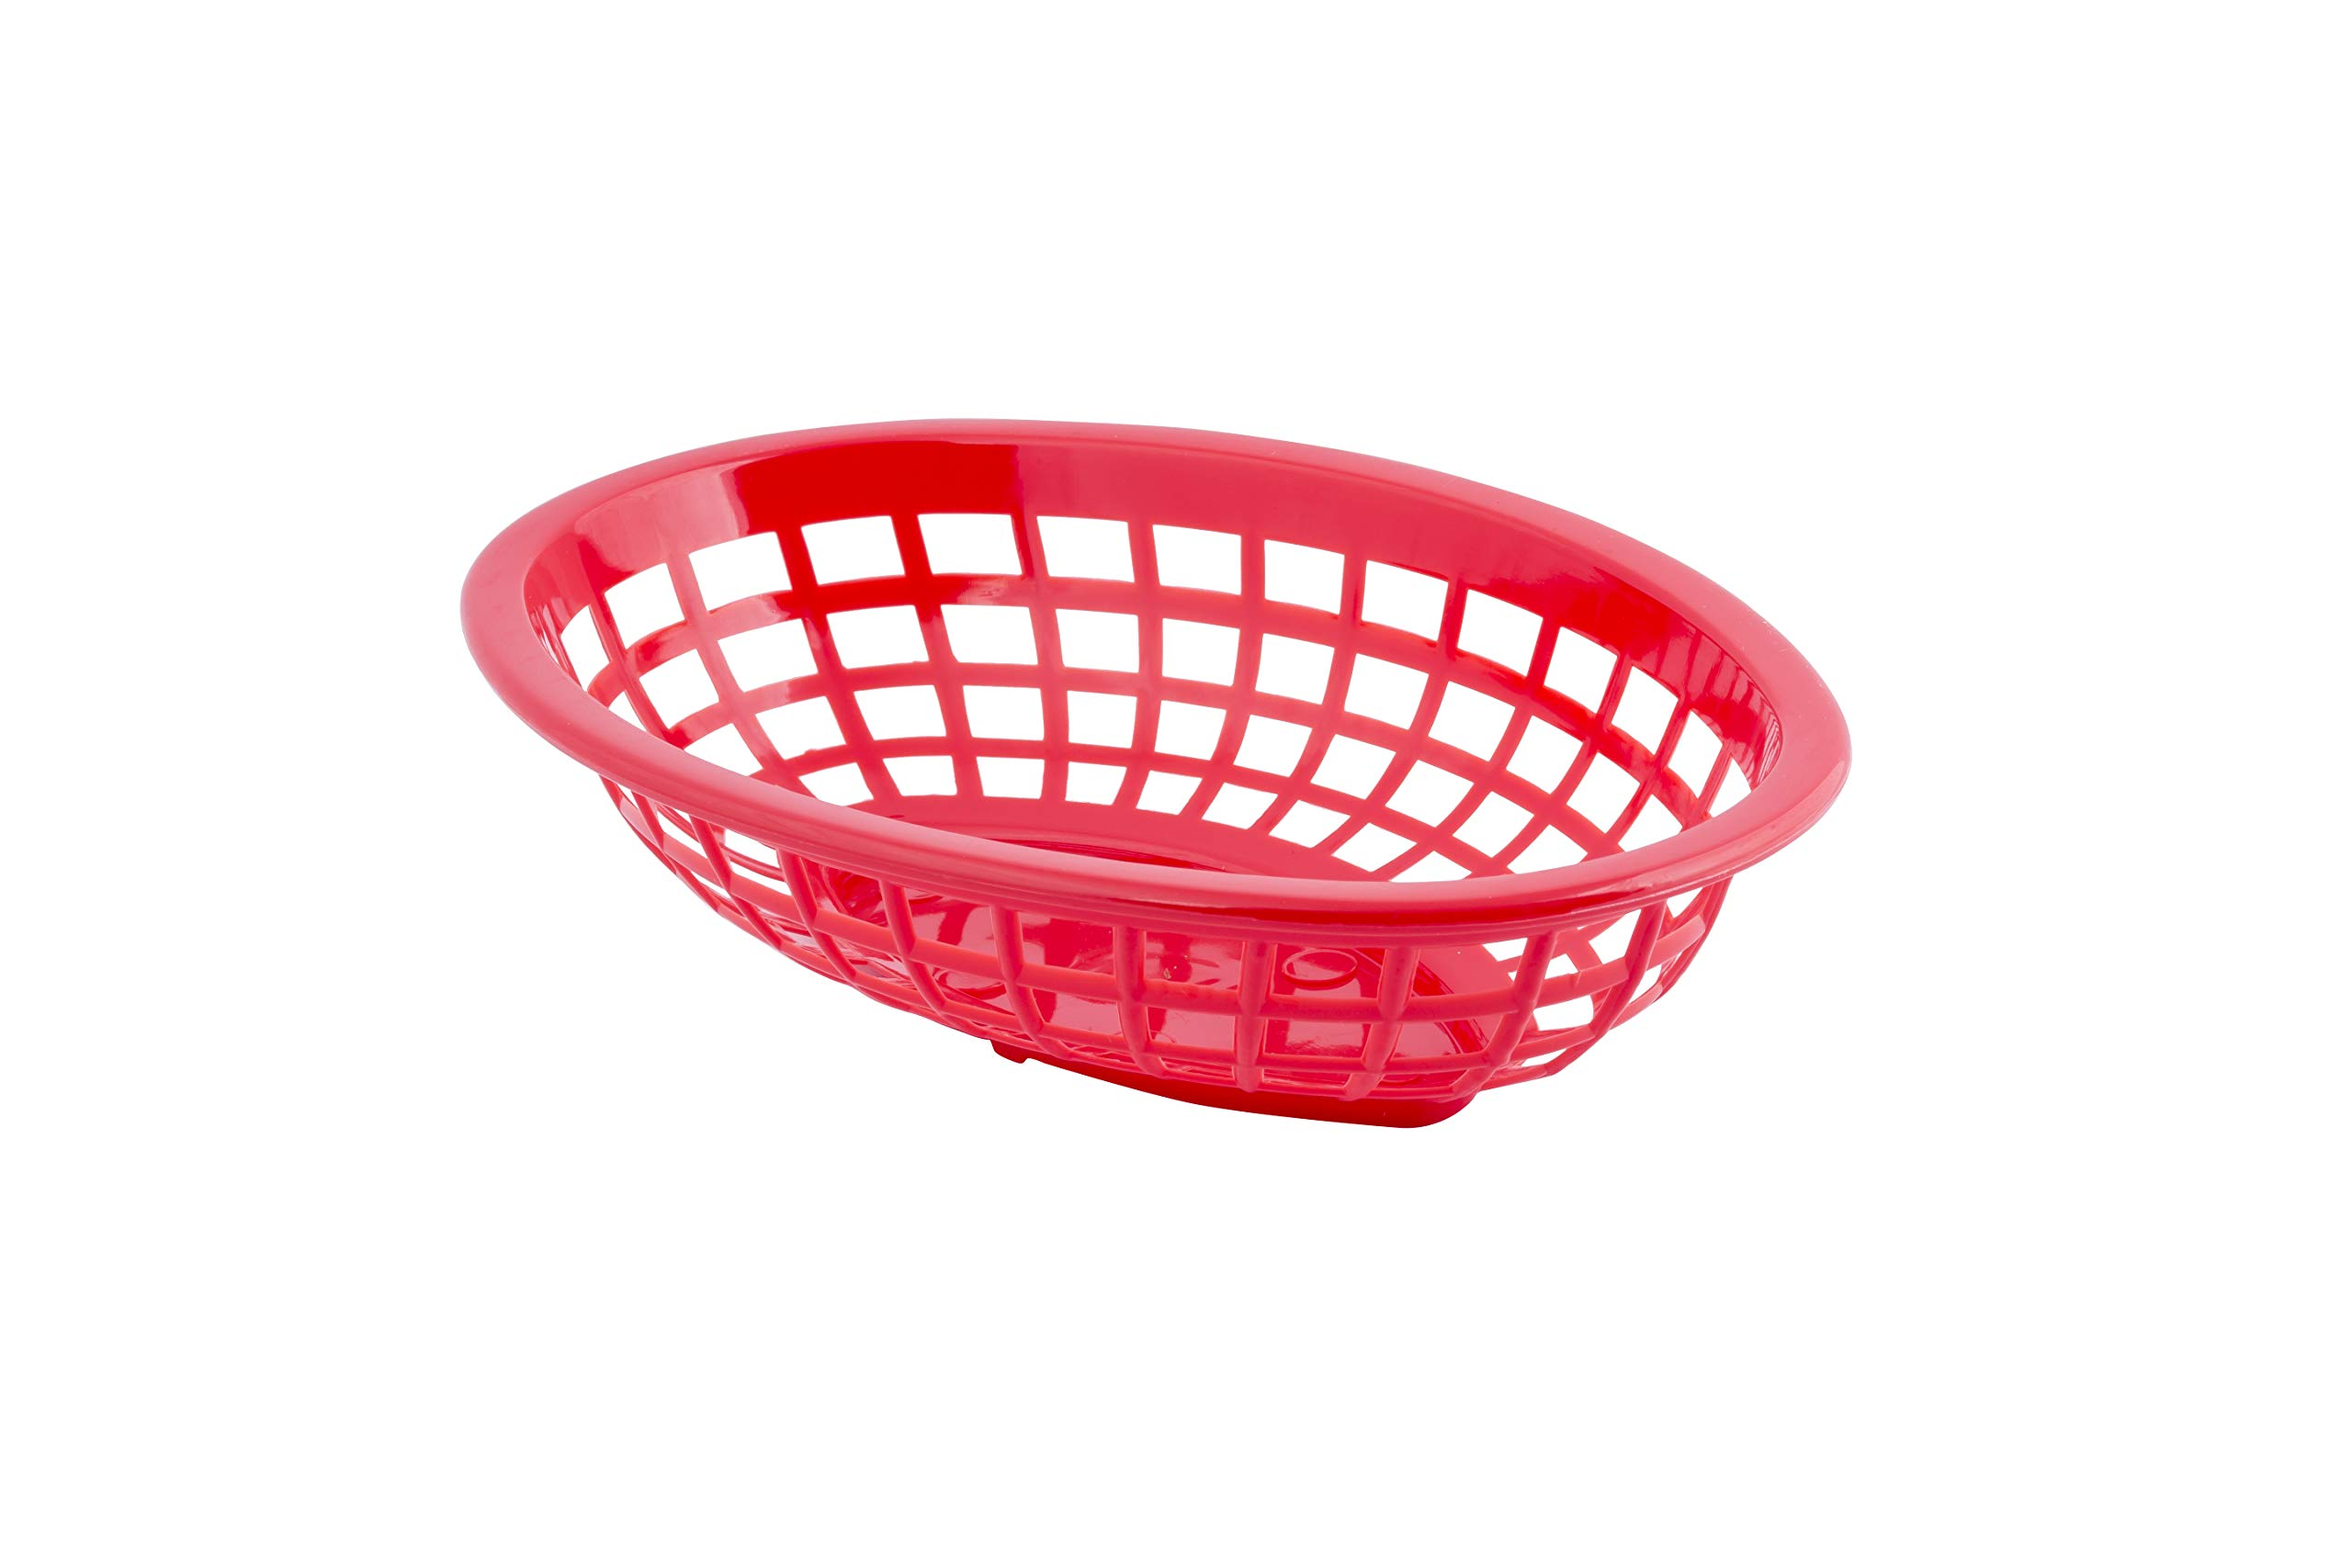 Tablecraft Red Small Oval Basket - 36 per case